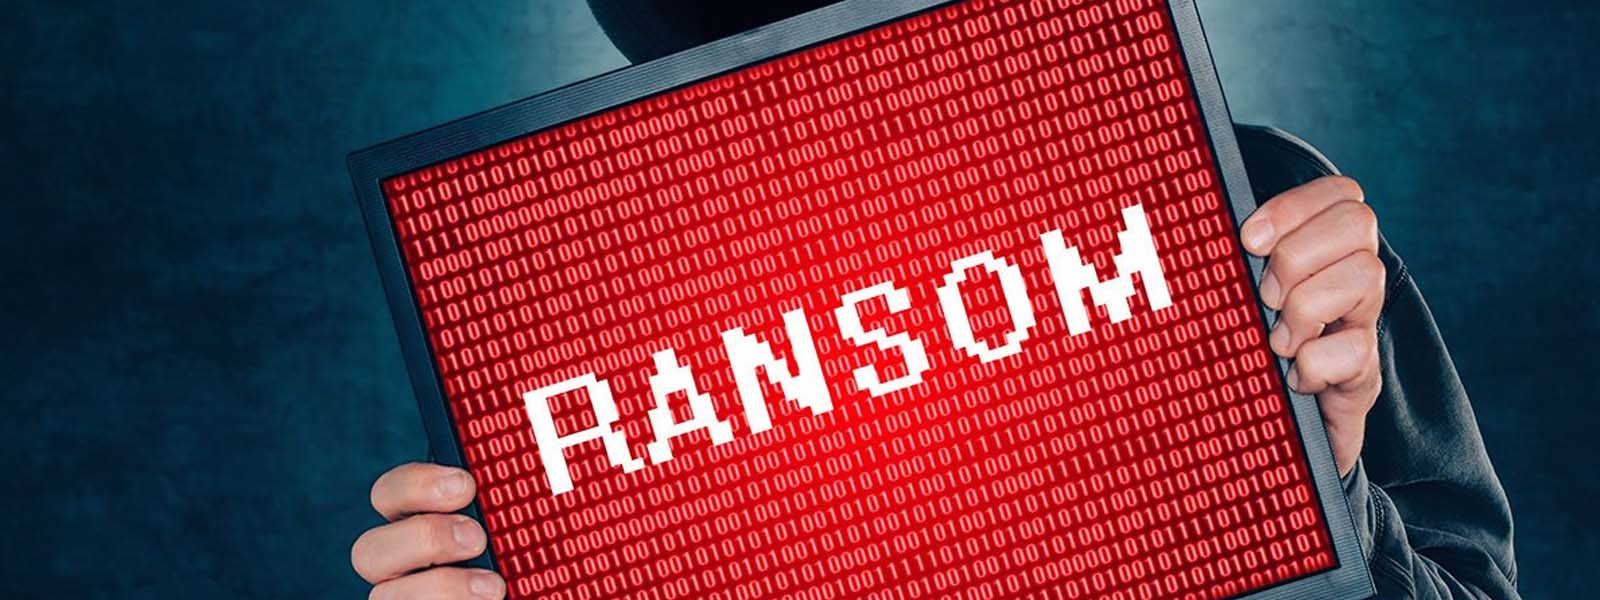 MSPs continue to suffer Ransomware attacks